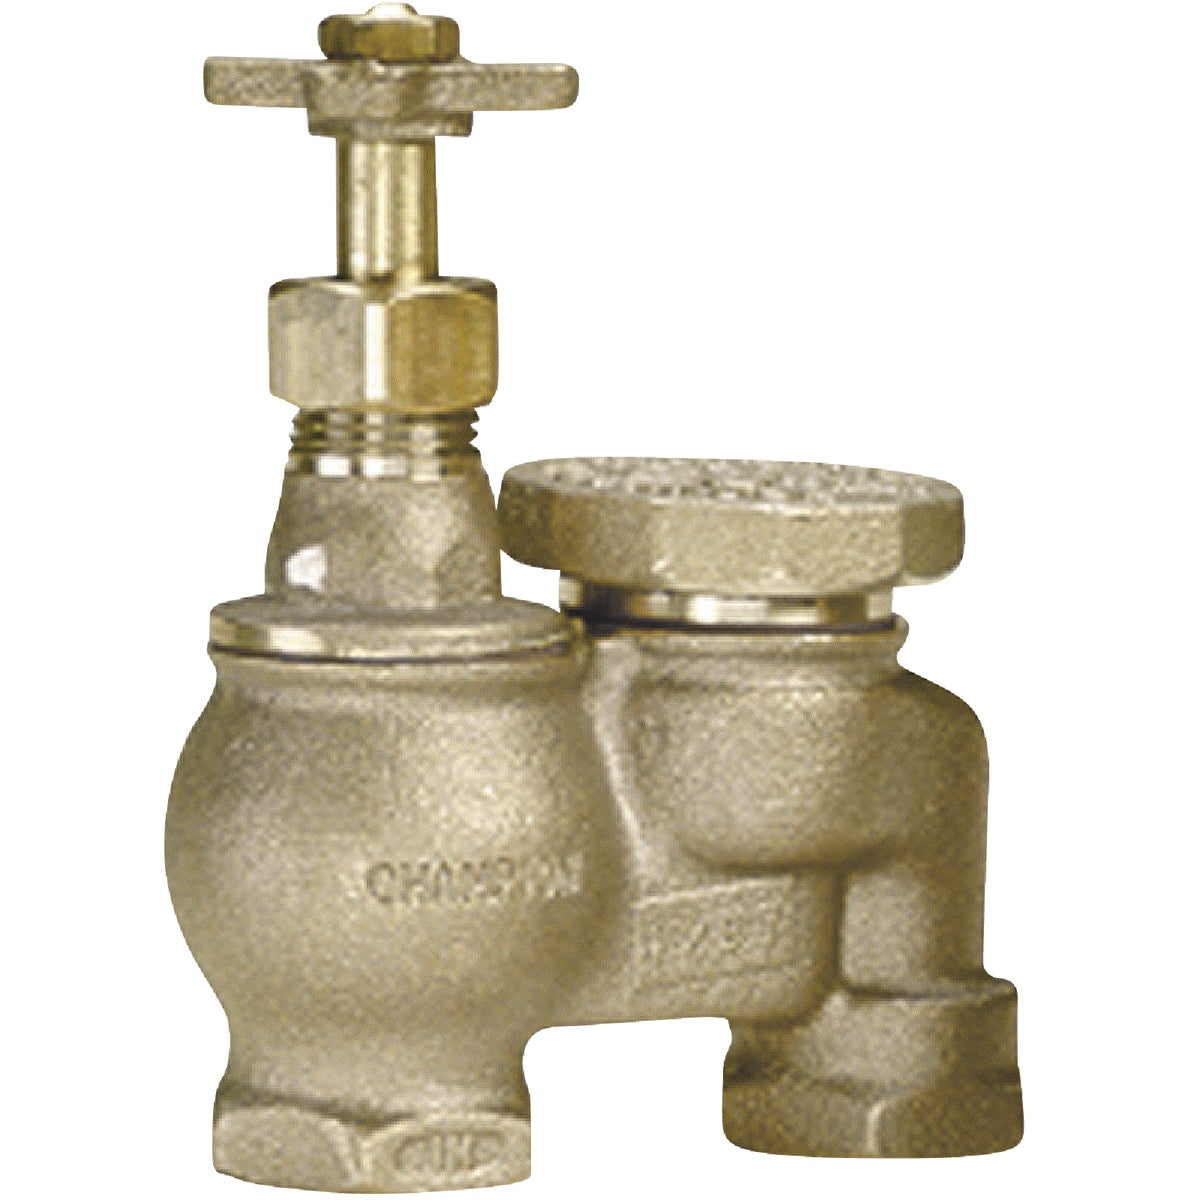 "1"" ANTI-SYPHON VALVE - 466P-100Y by Champion Arrowhead"